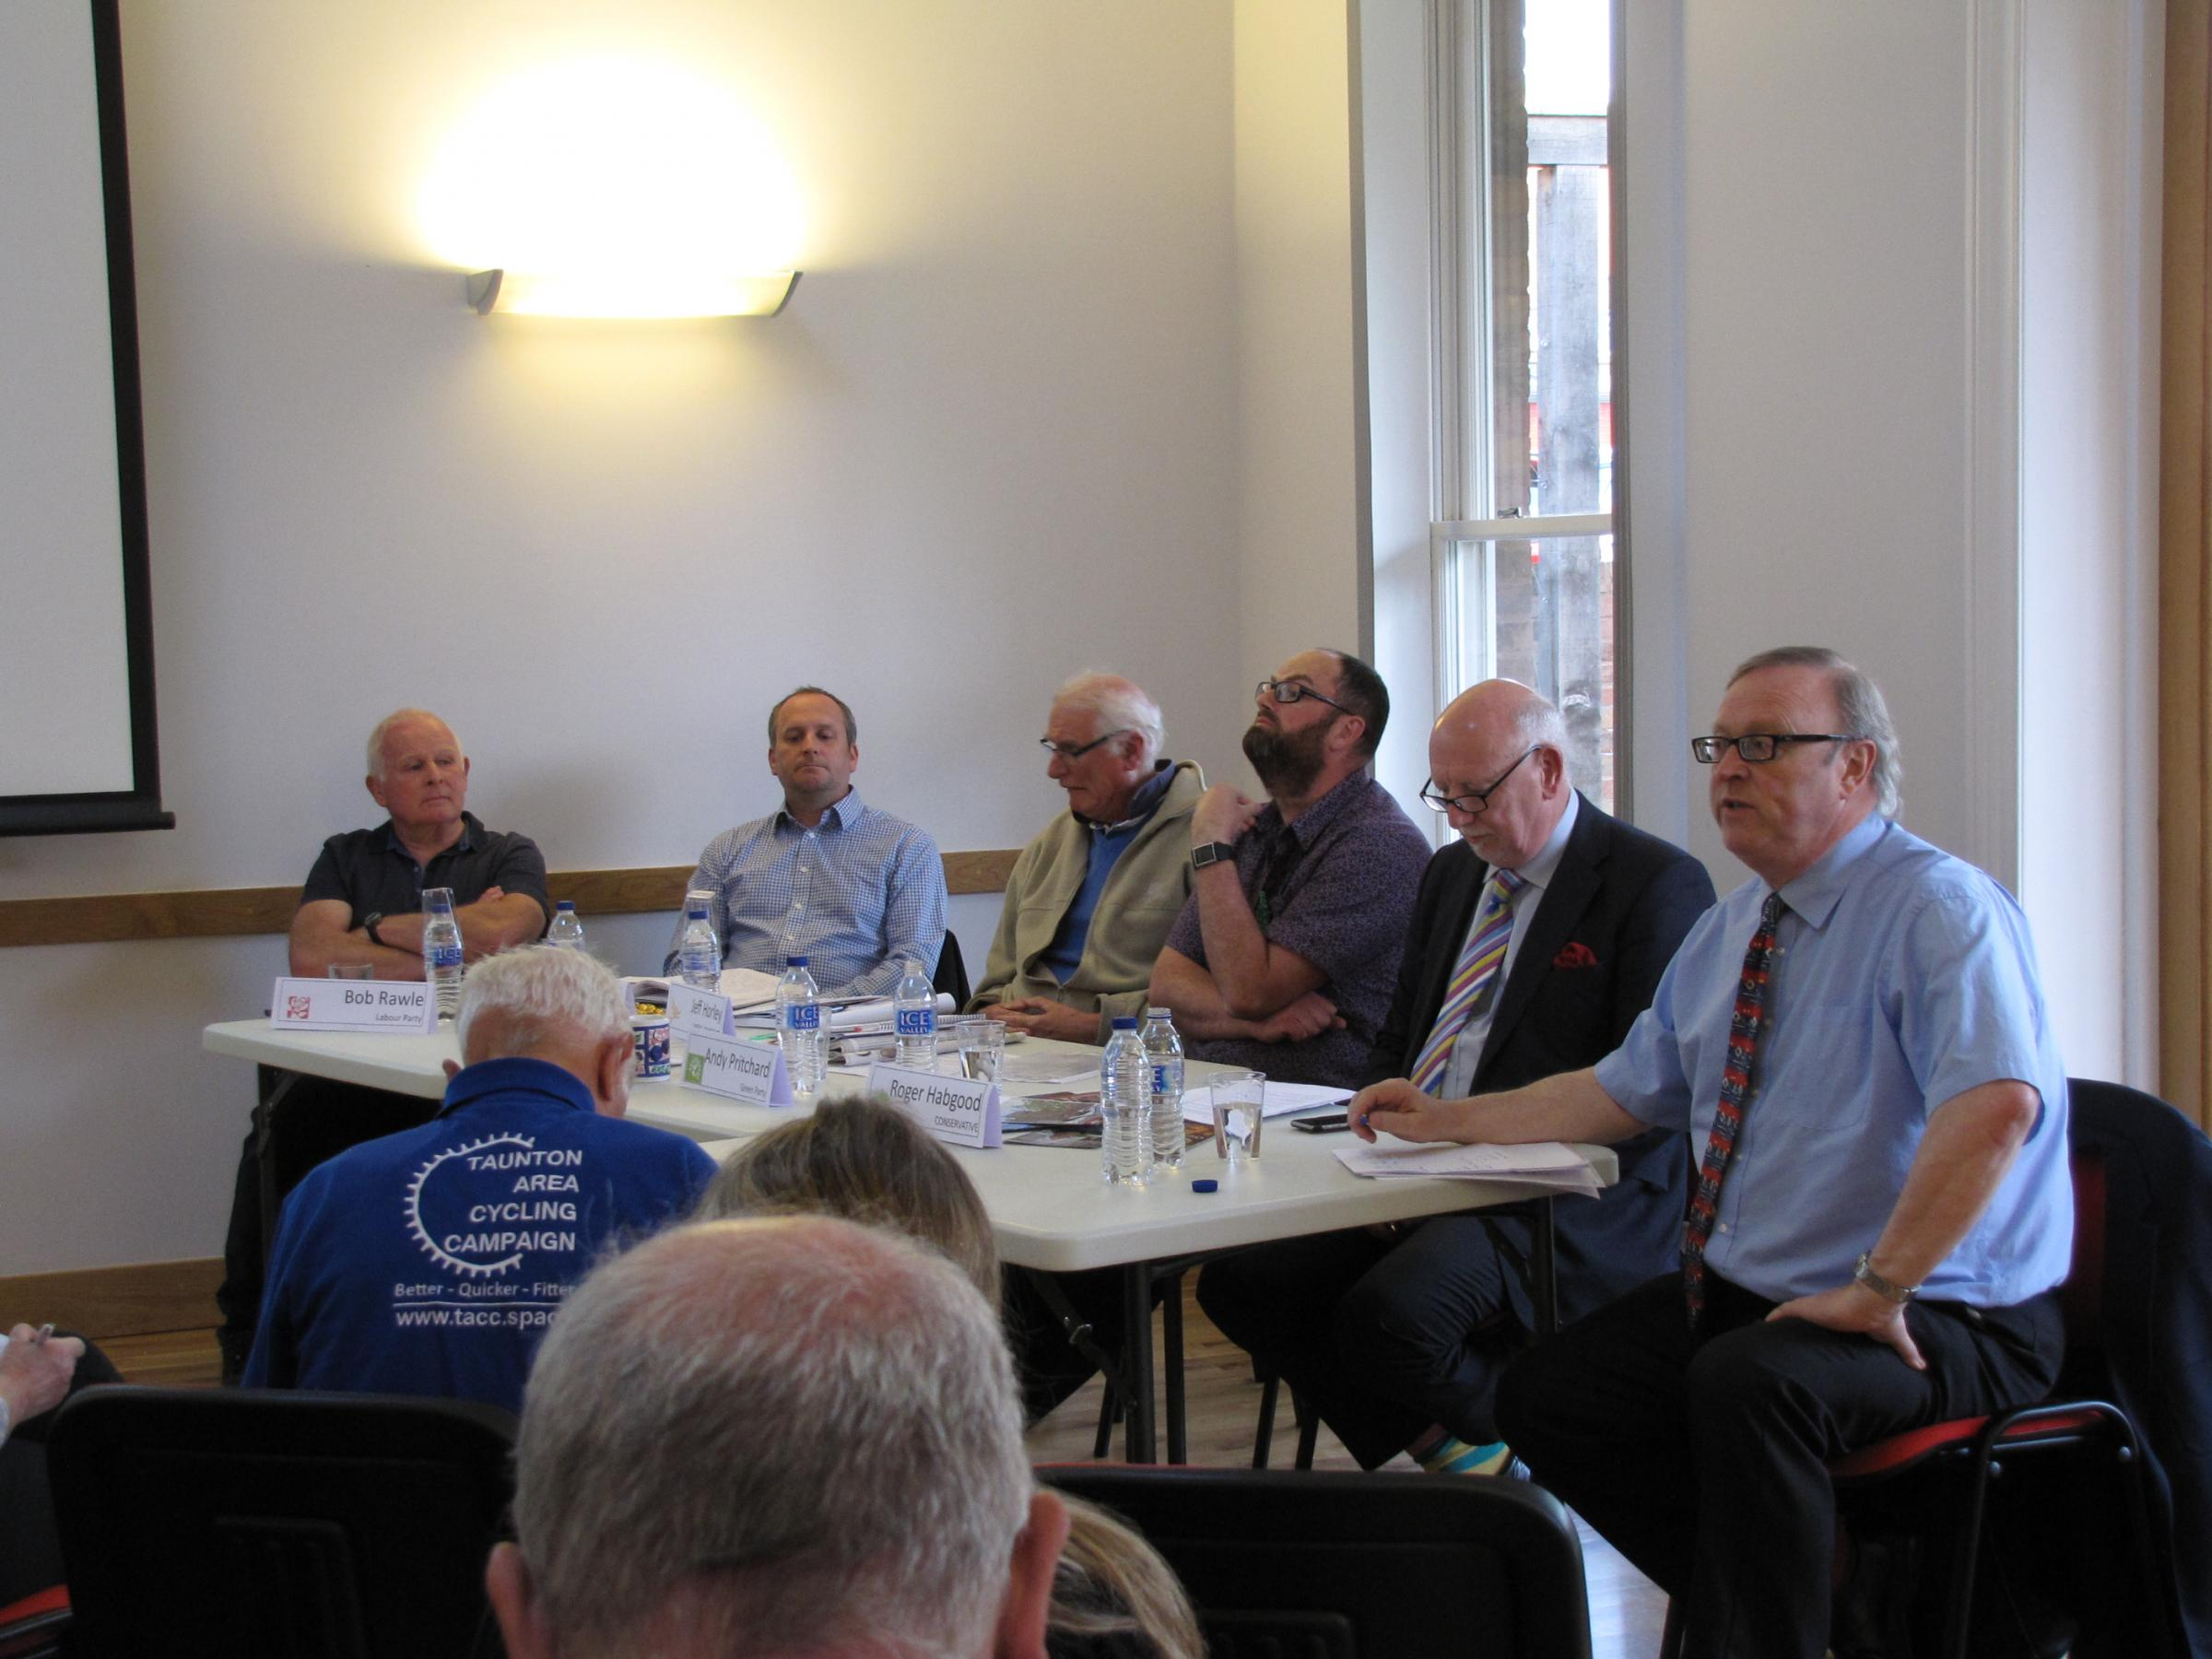 QUESTIONS: County council hopefuls took part in a special hustings event organised by the Taunton Area Cycling Campaign